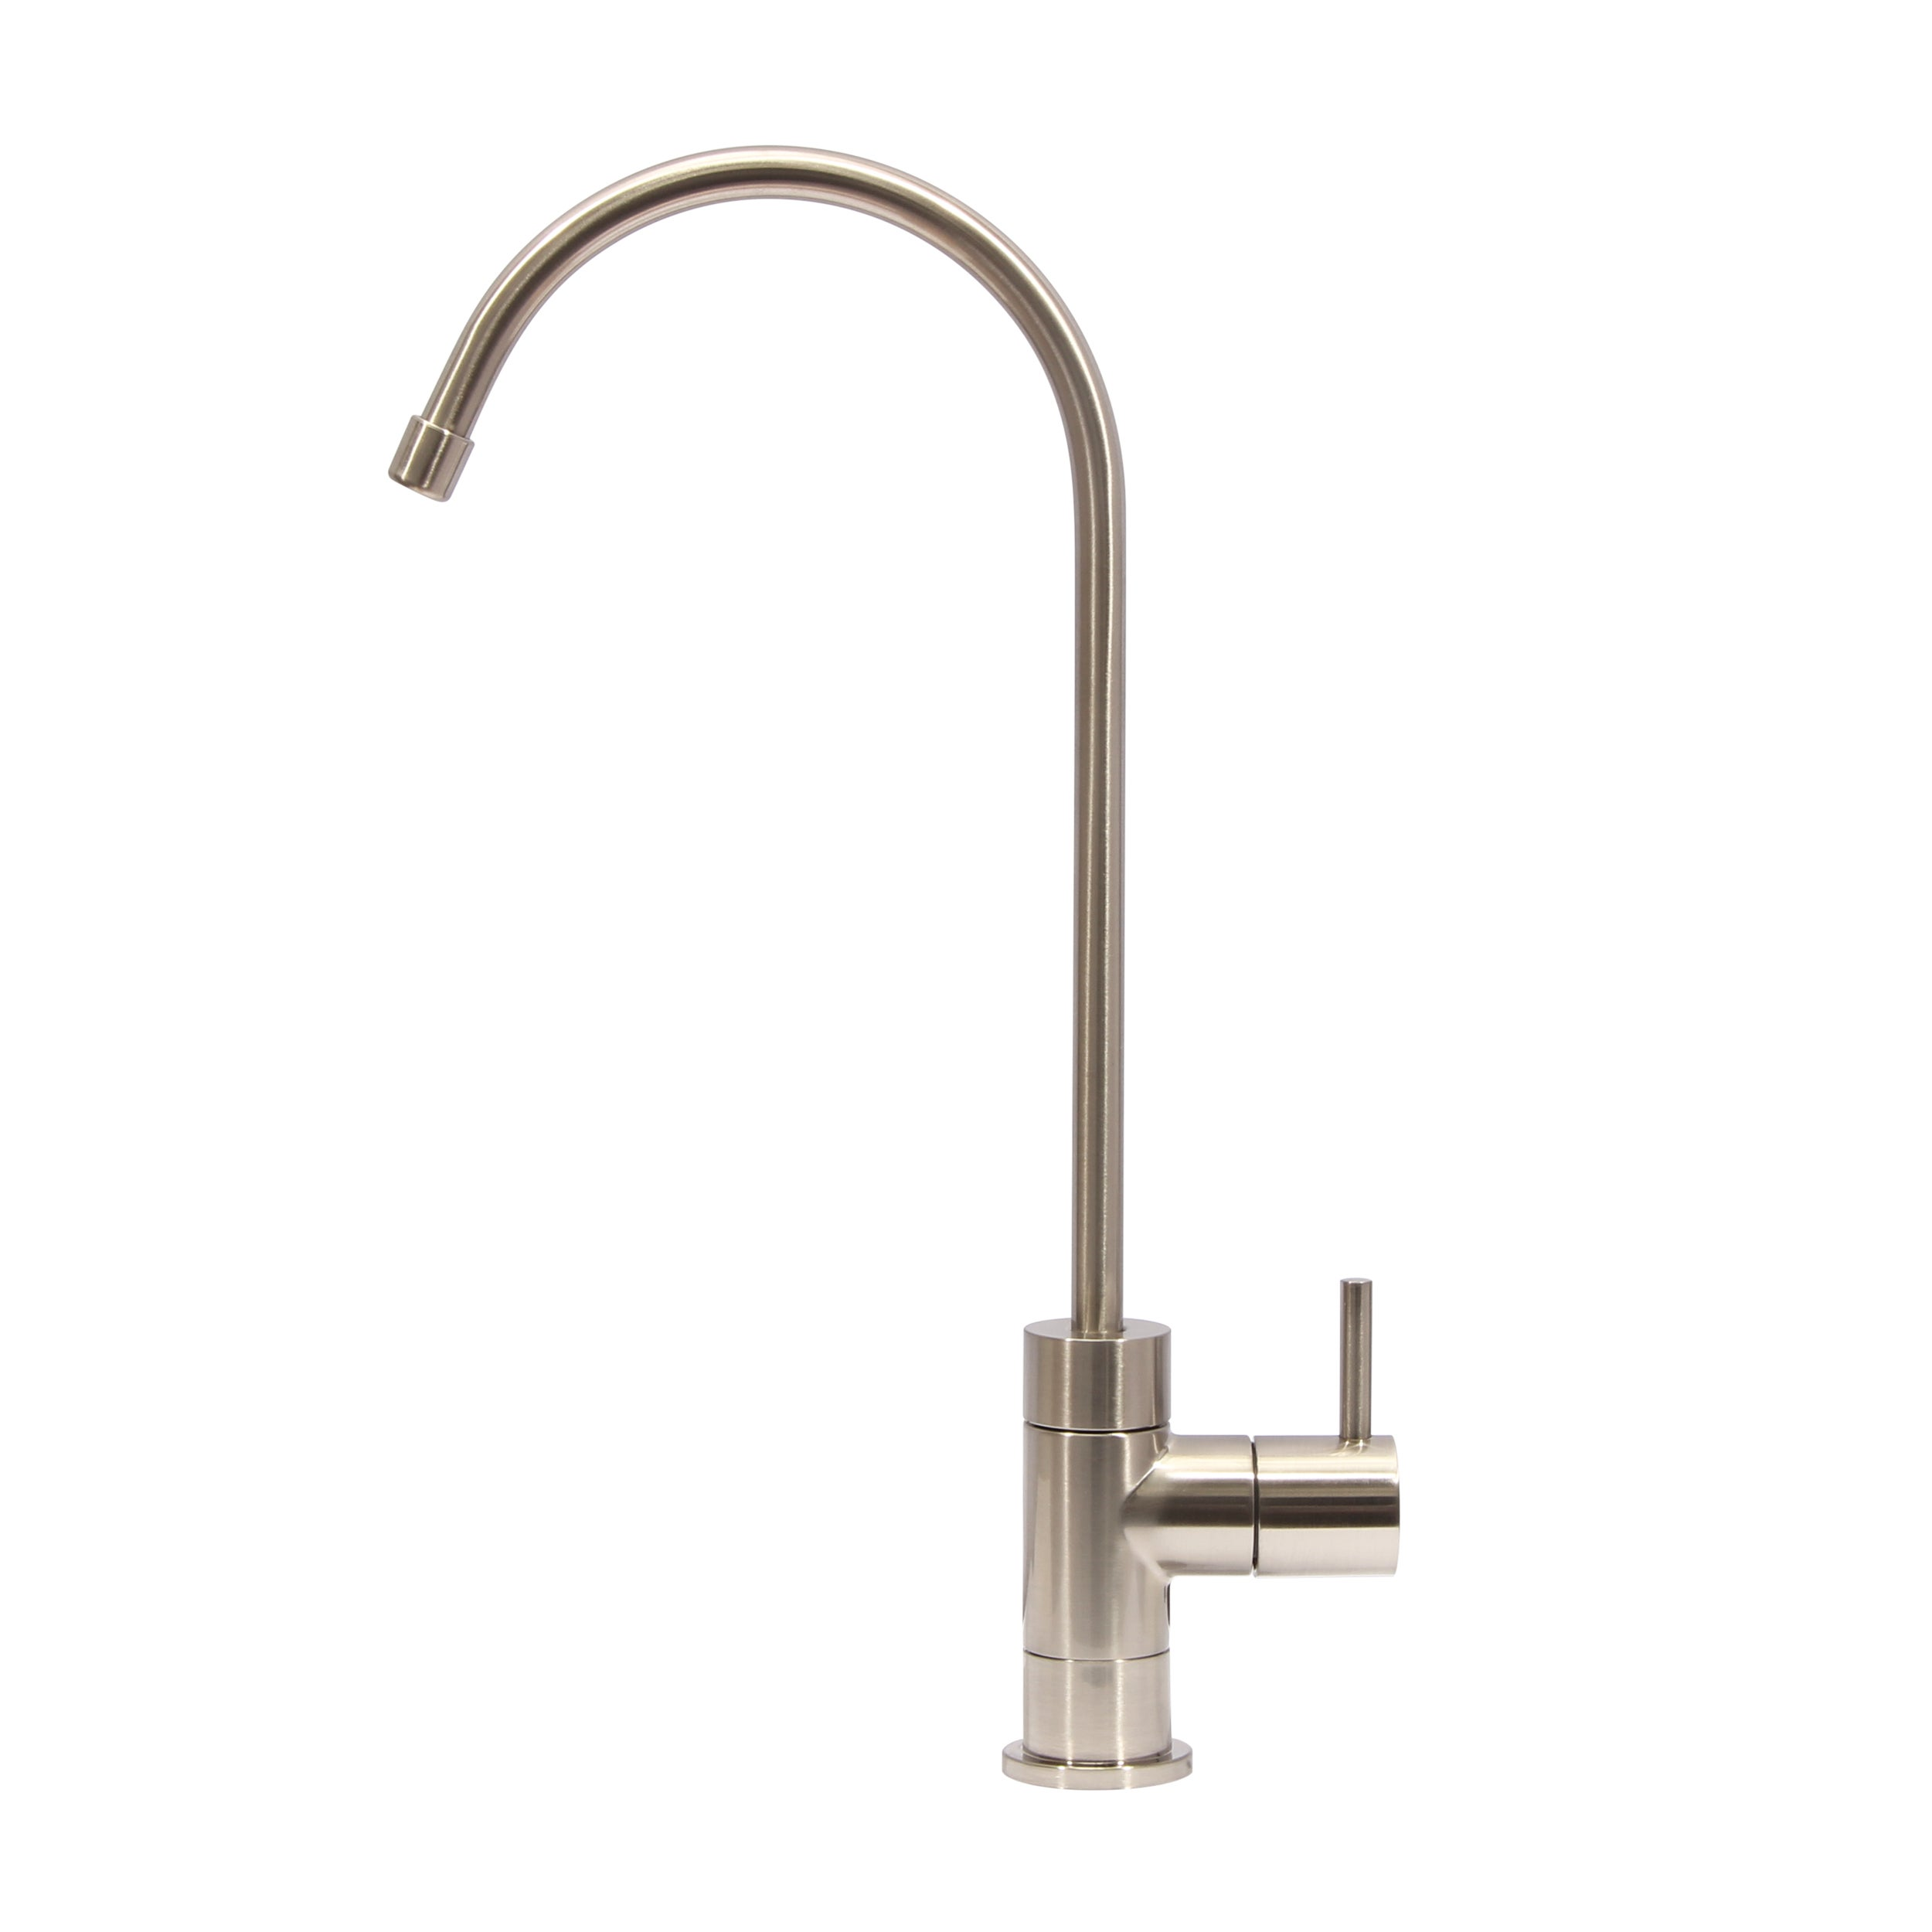 westbrook hot cm color hc chrome designer water cold lead faucet reverse upgrades drinking alone faucets wst faq free osmosis for